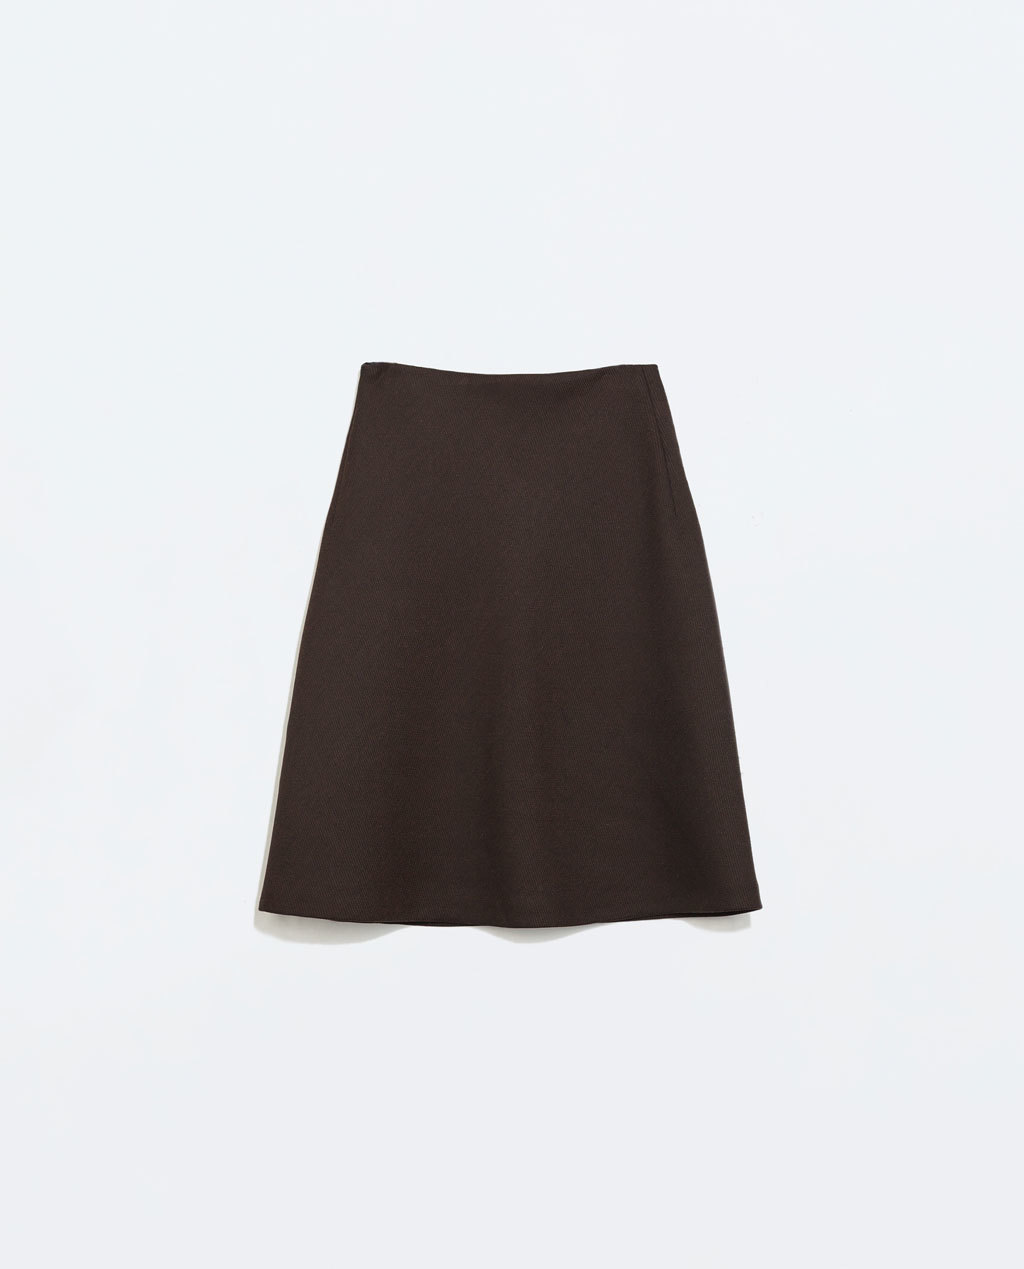 A Line Patterned Weave Skirt - pattern: plain; fit: loose/voluminous; waist: mid/regular rise; predominant colour: chocolate brown; occasions: casual, creative work; length: just above the knee; style: a-line; fibres: polyester/polyamide - mix; hip detail: subtle/flattering hip detail; pattern type: fabric; texture group: woven light midweight; trends: minimal sleek; season: a/w 2014